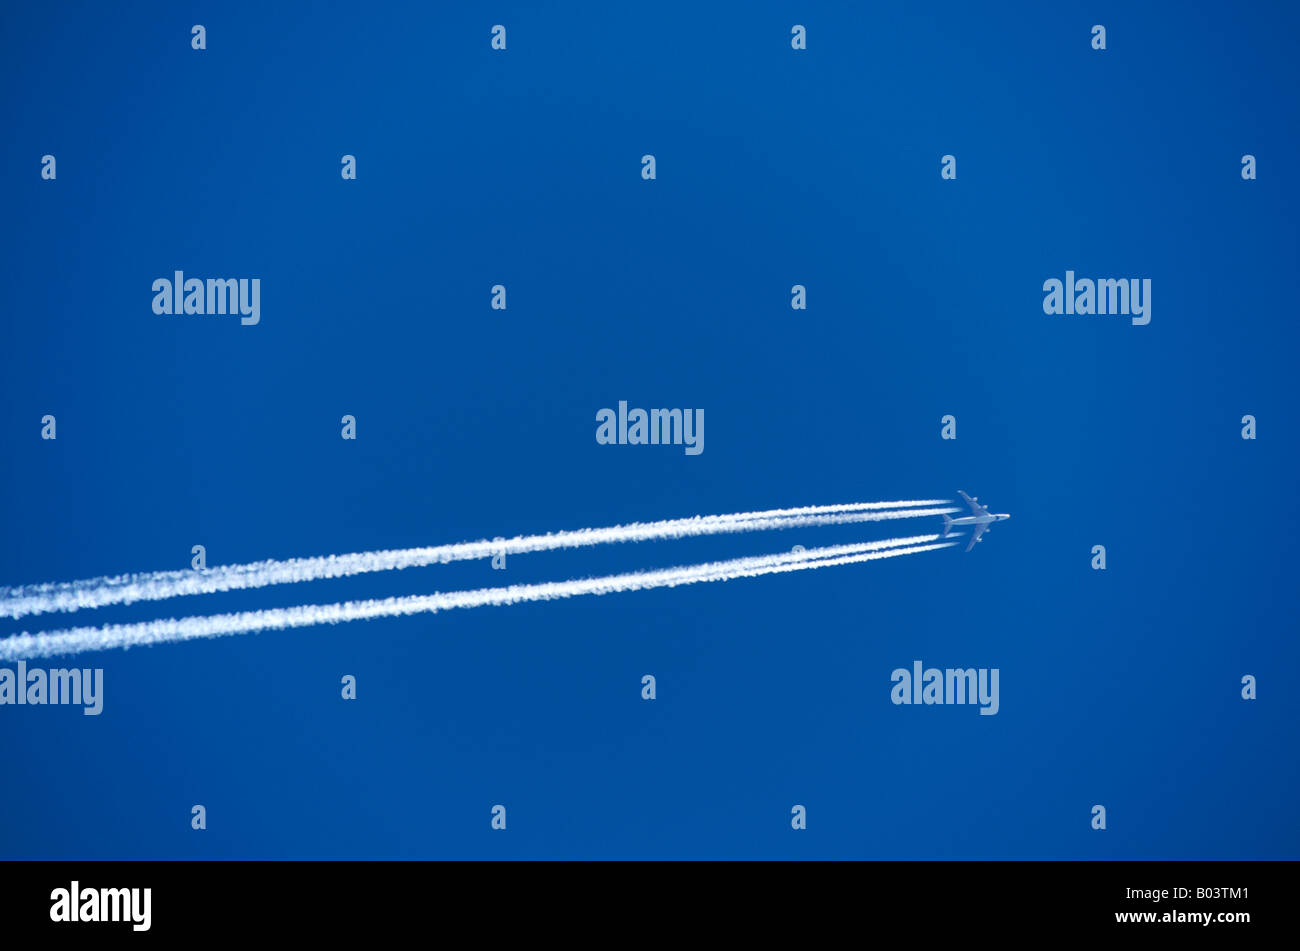 Plane in a blue sky. - Stock Image